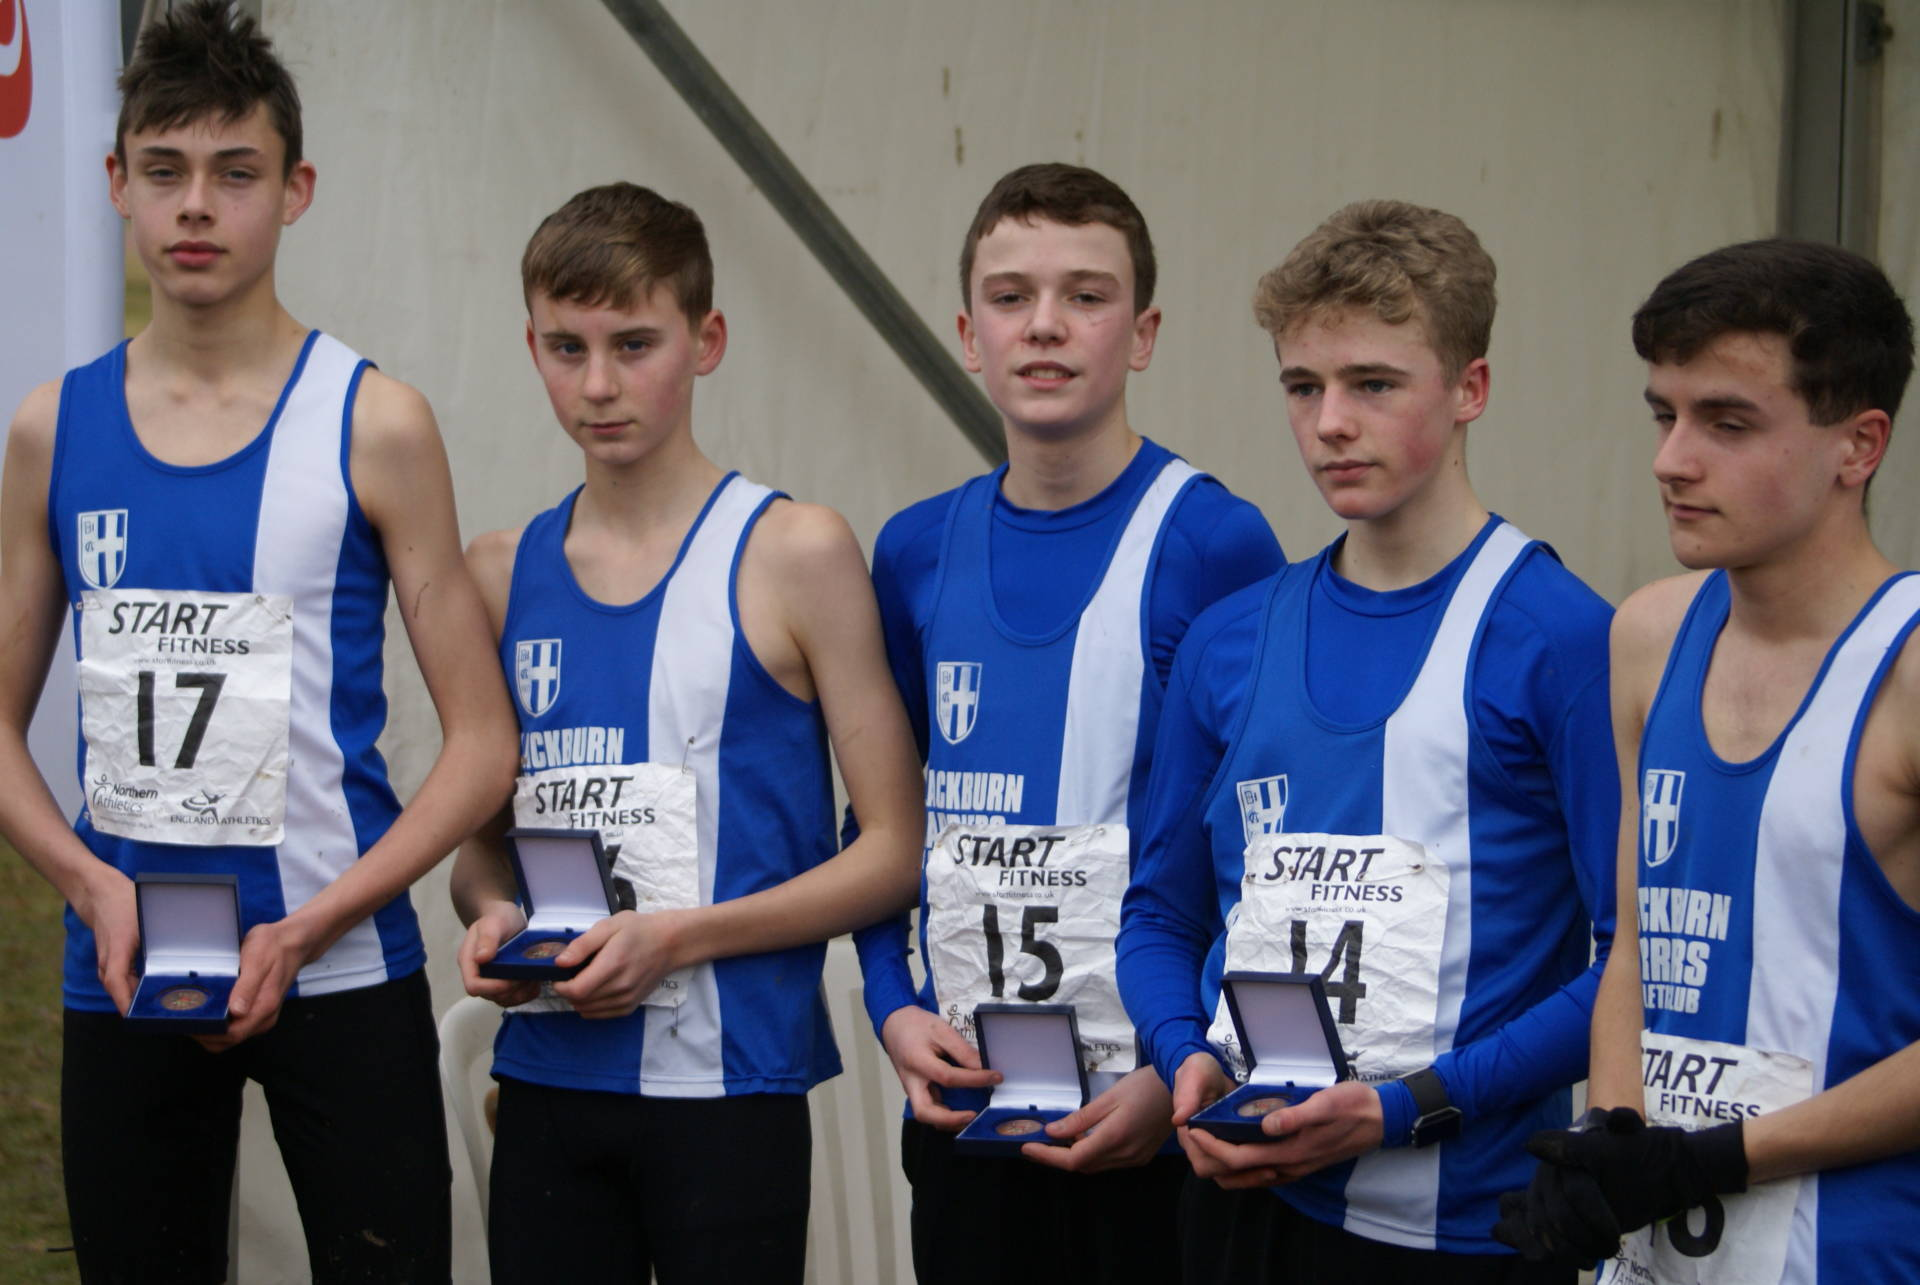 U15 Boys on the Podium at Northern Cross Country Championships – Top Ten for Senior Men & U13 Boys – V40 Win for Joanne